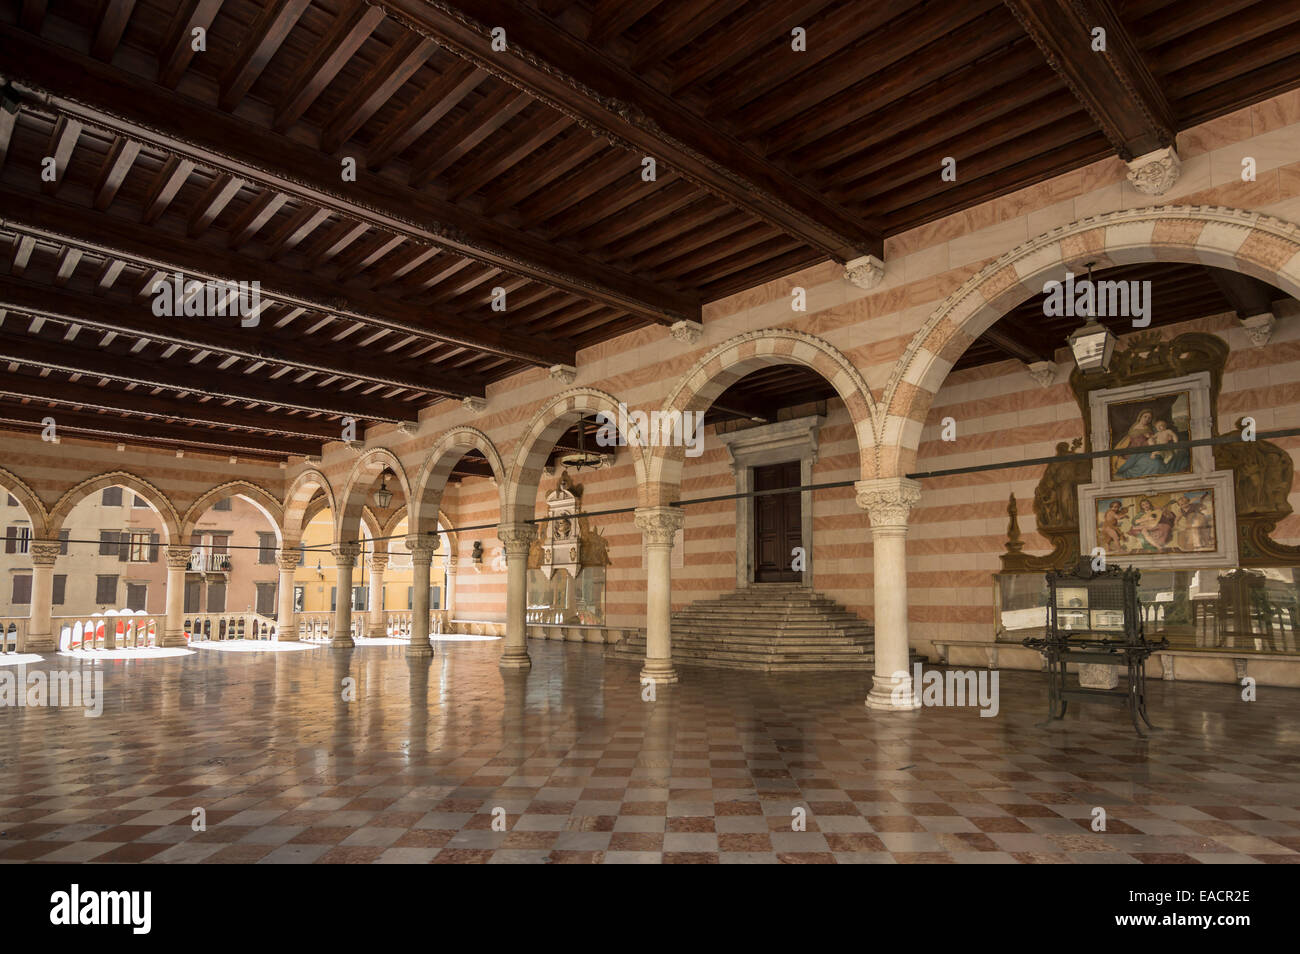 The 15th century Loggia del Lionello in in Liberty Square  in Udine Italy. This was built between 1448 and 1457 - Stock Image